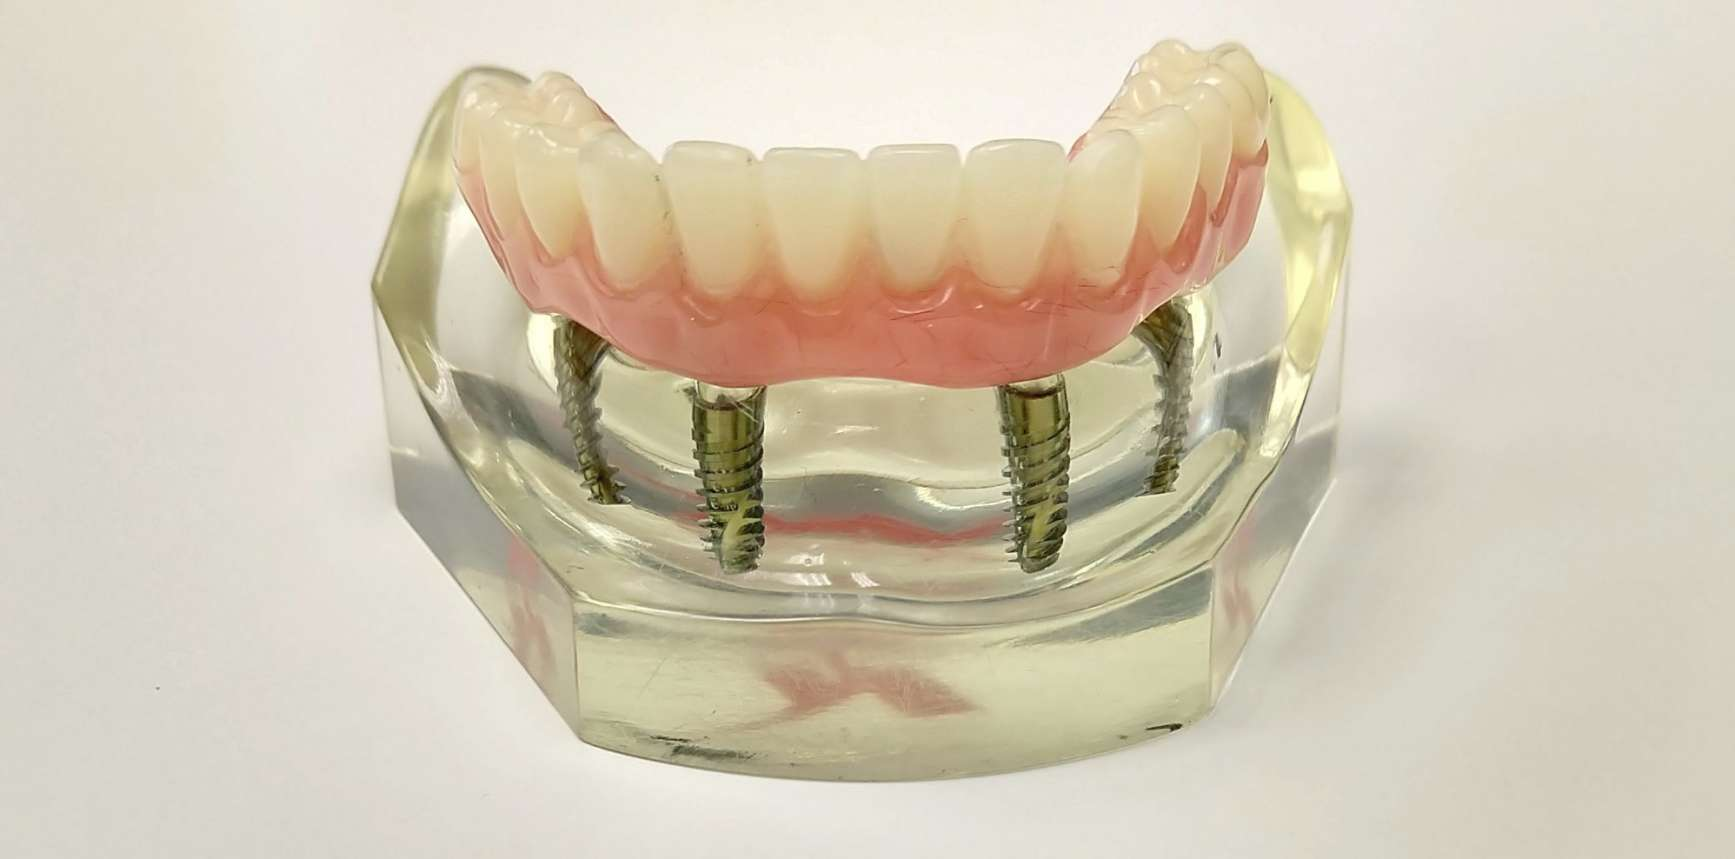 cheapest way to do an all four dental implant - fixed dentures pictures